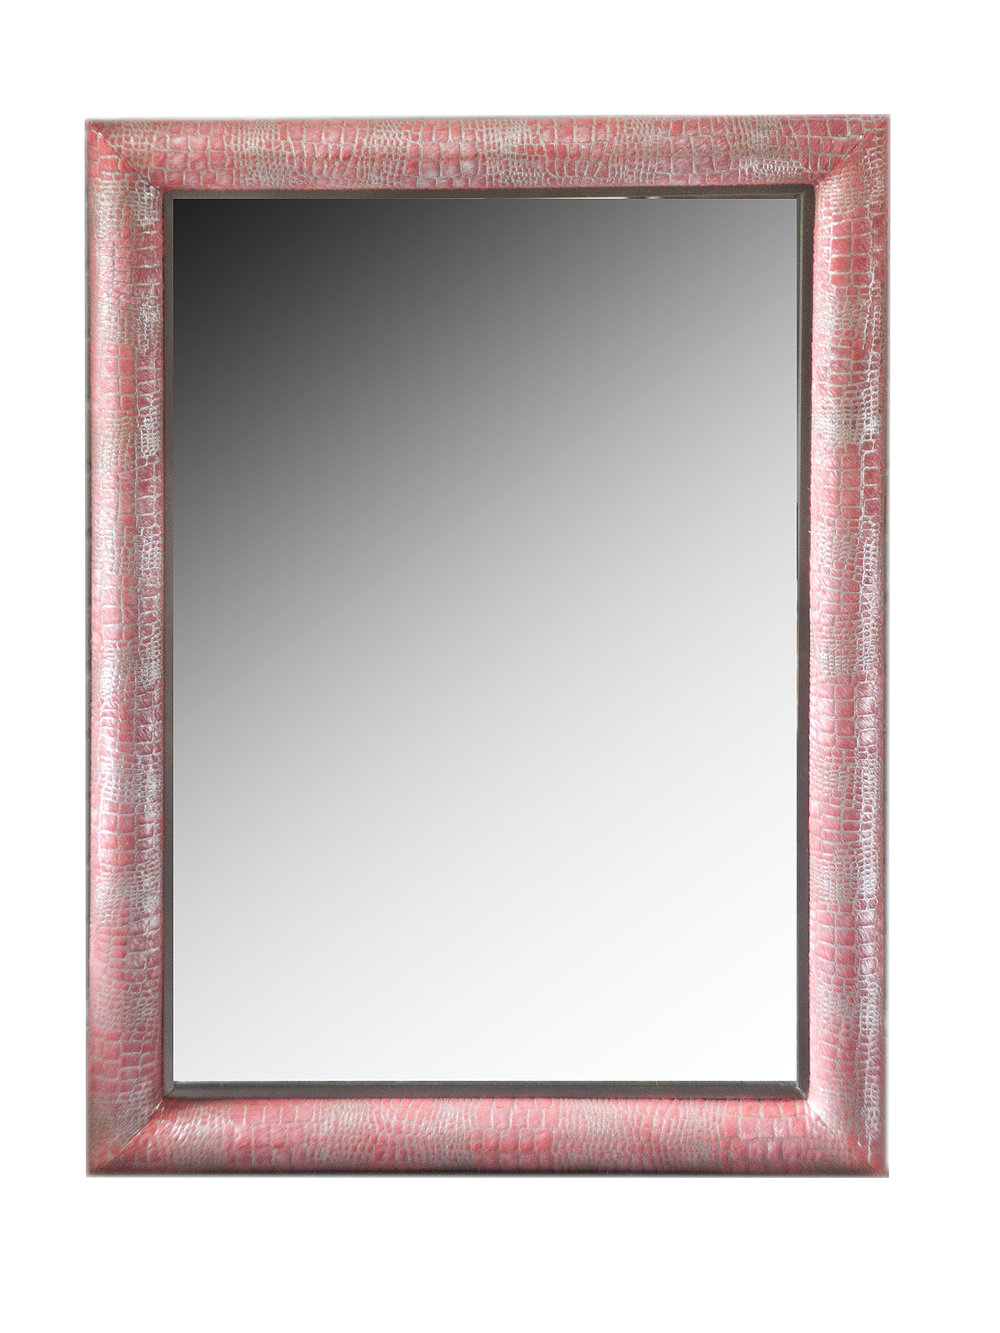 Croc Embossed hair-on hide framed mirror